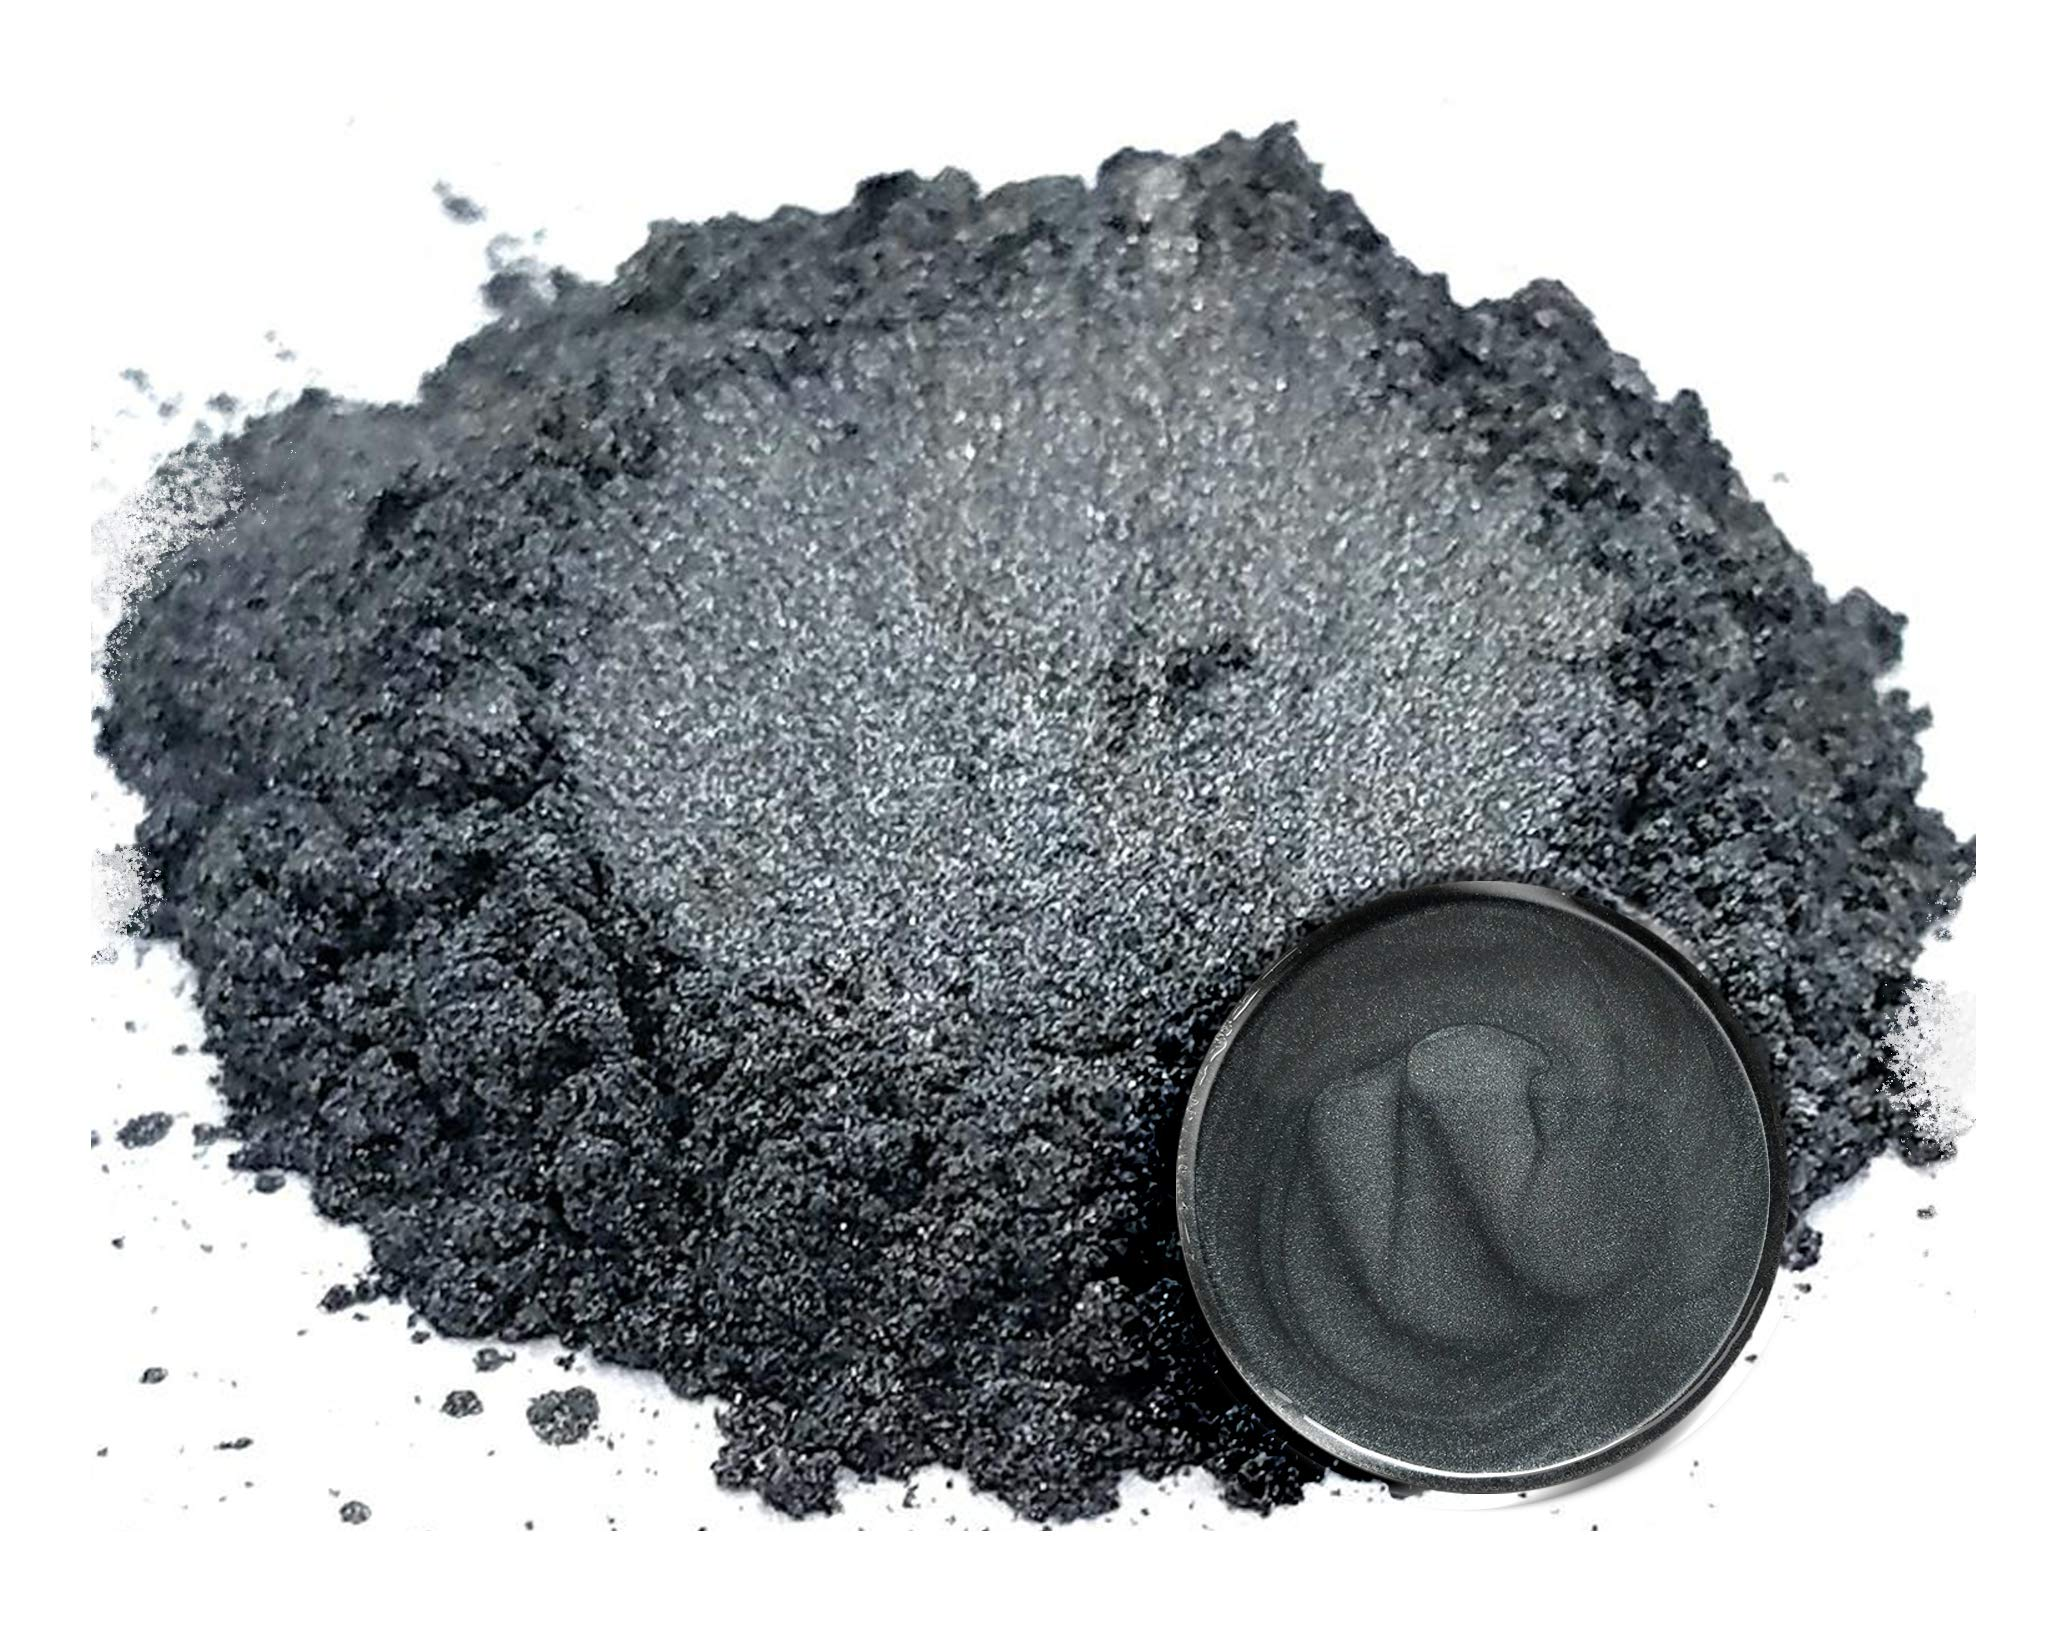 Eye Candy Mica Powder Pigment ''Katana Grey'' (50g) Multipurpose DIY Arts and Crafts Additive | Woodworking, Epoxy, Resin, Natural Bath Bombs, Paint, Soap, Nail Polish, Lip Balm by Eye Candy